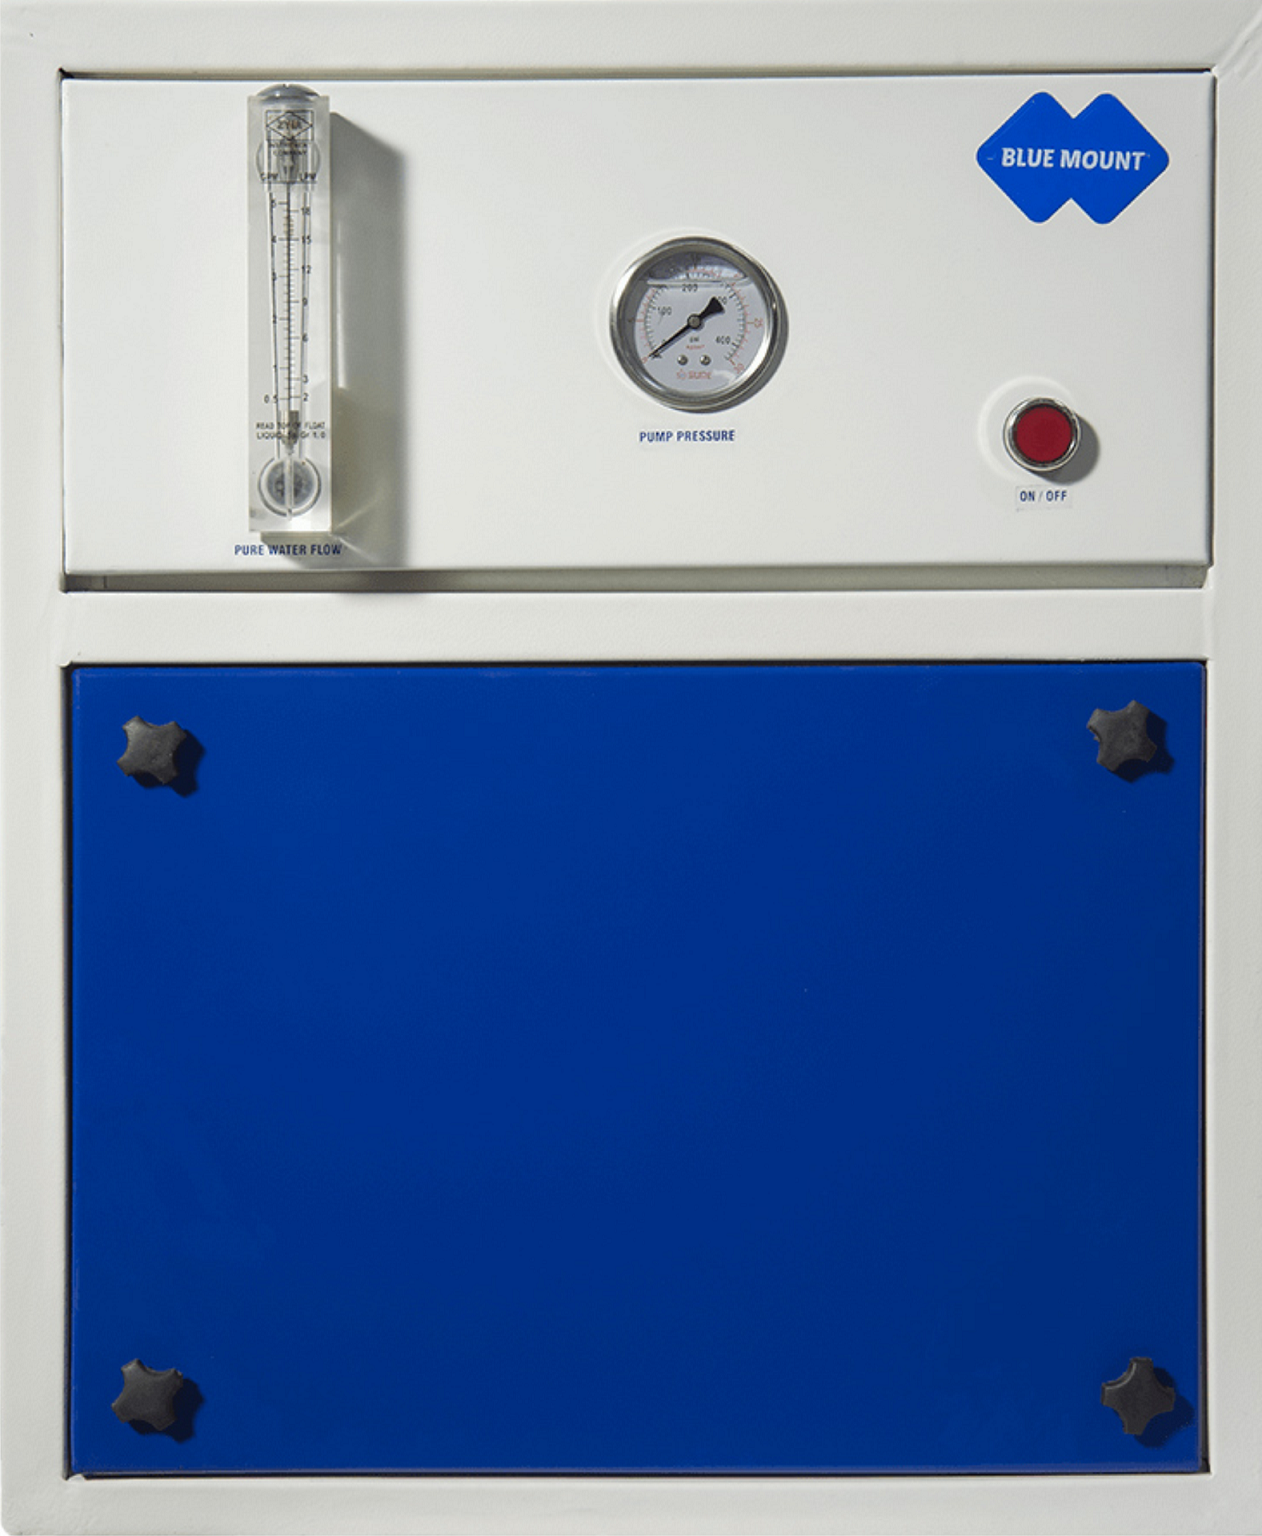 Blue Mount Grand 25 Industrial Alkaline RO + UV Water Purifier